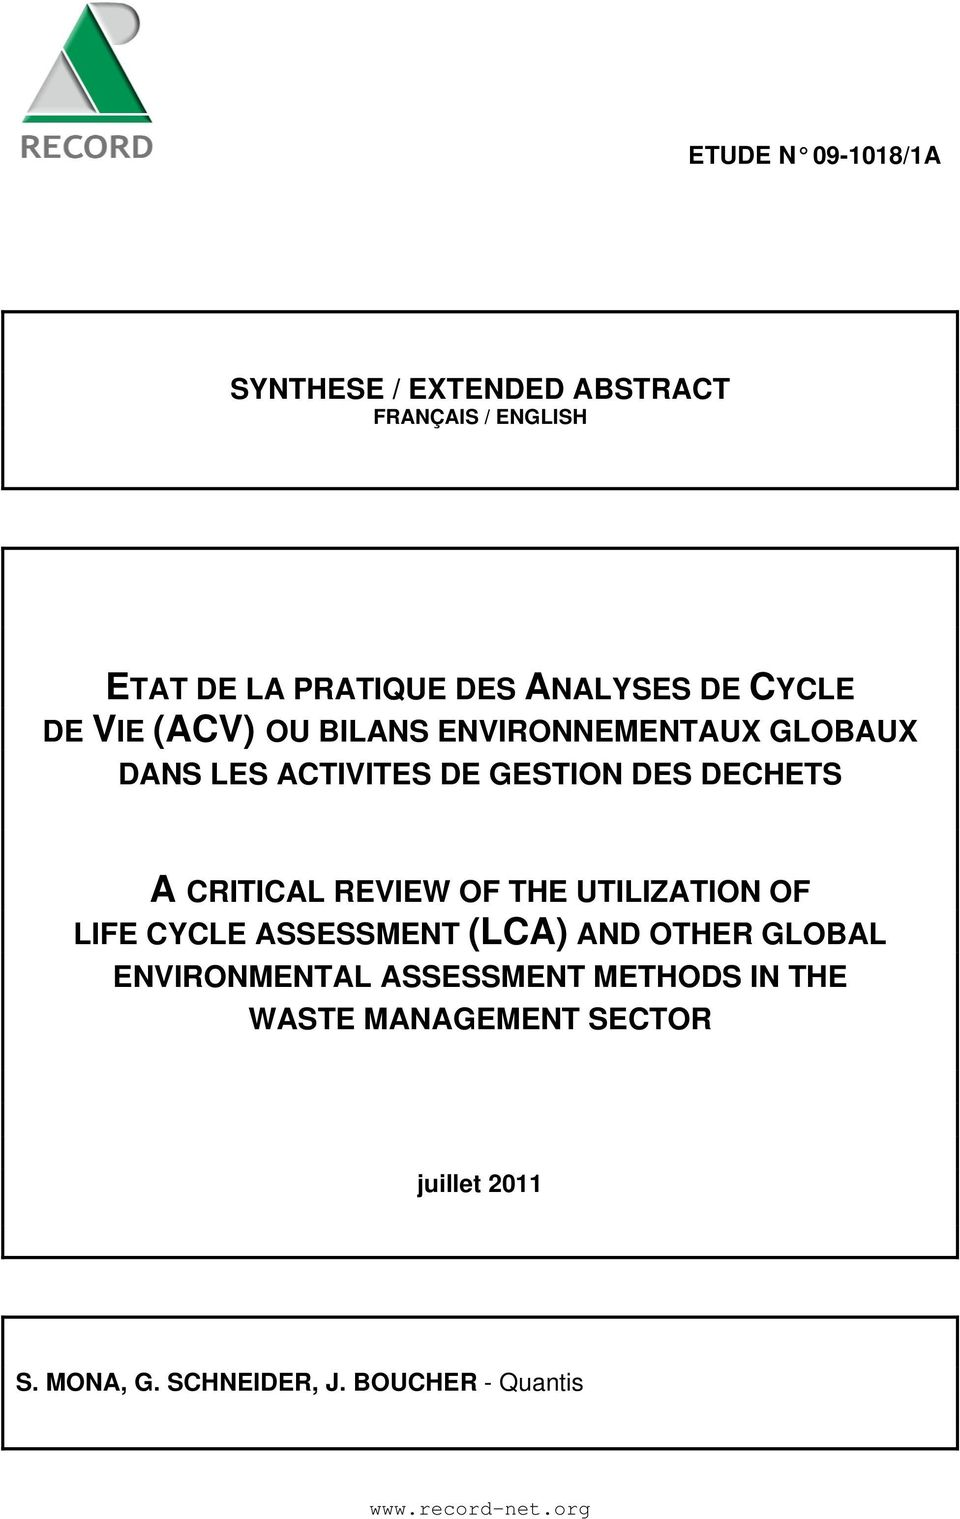 CRITICAL REVIEW OF THE UTILIZATION OF LIFE CYCLE ASSESSMENT (LCA) AND OTHER GLOBAL ENVIRONMENTAL